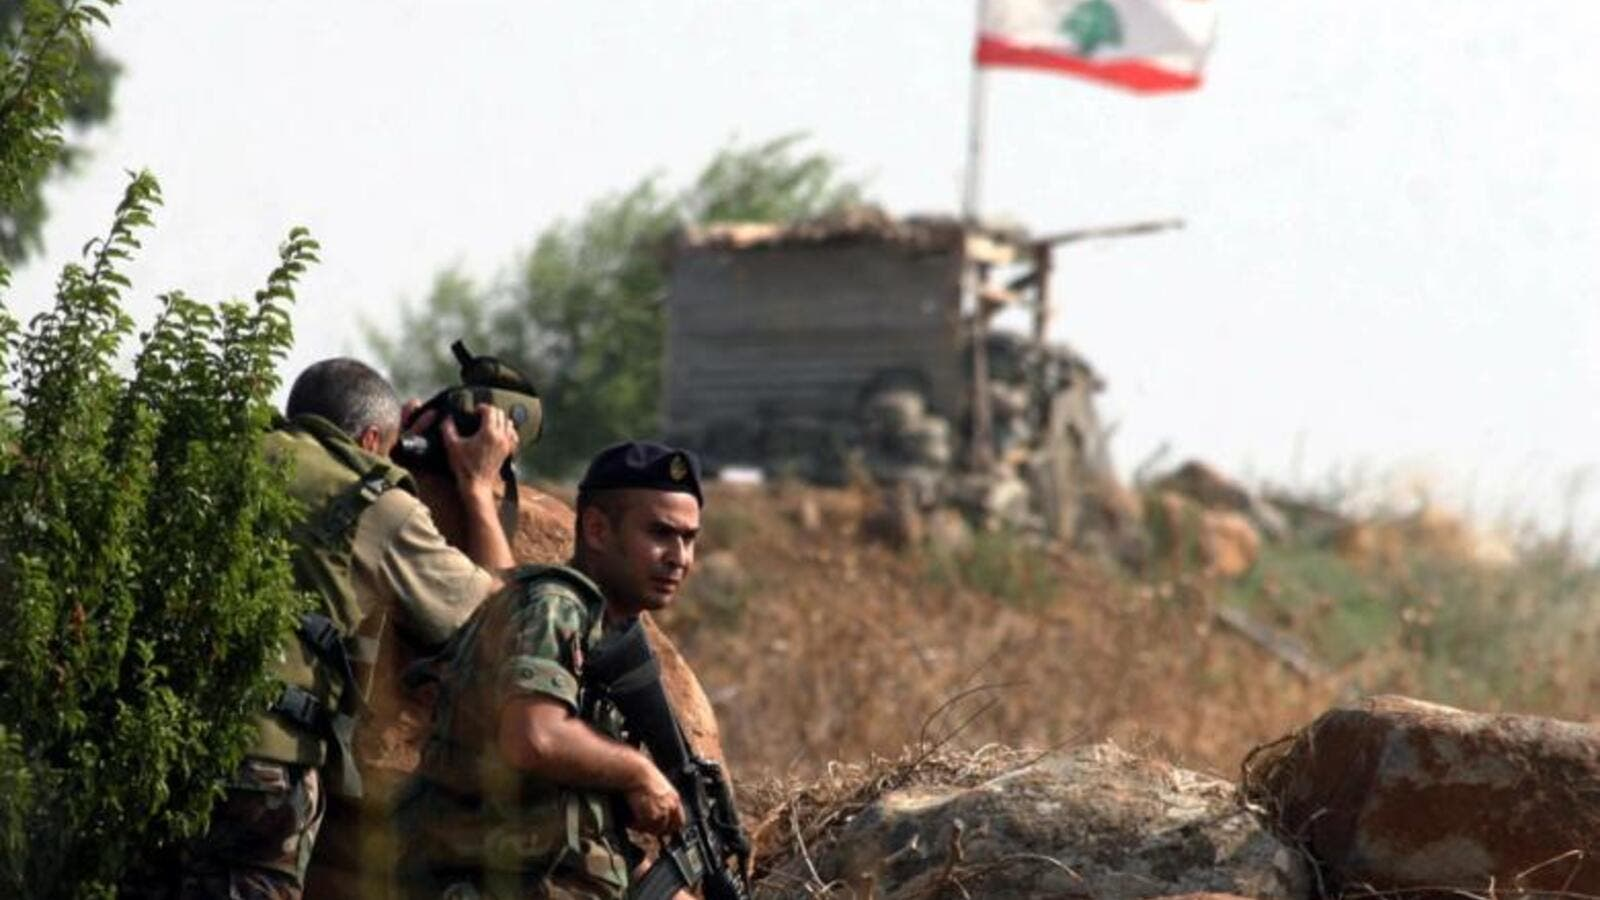 The incident also marked a rare appearance of Lebanese and Syrian officials with Syrian Interior Minister Maj. Gen. Mohammad al-Shaar attending. (AFP/File Photo)